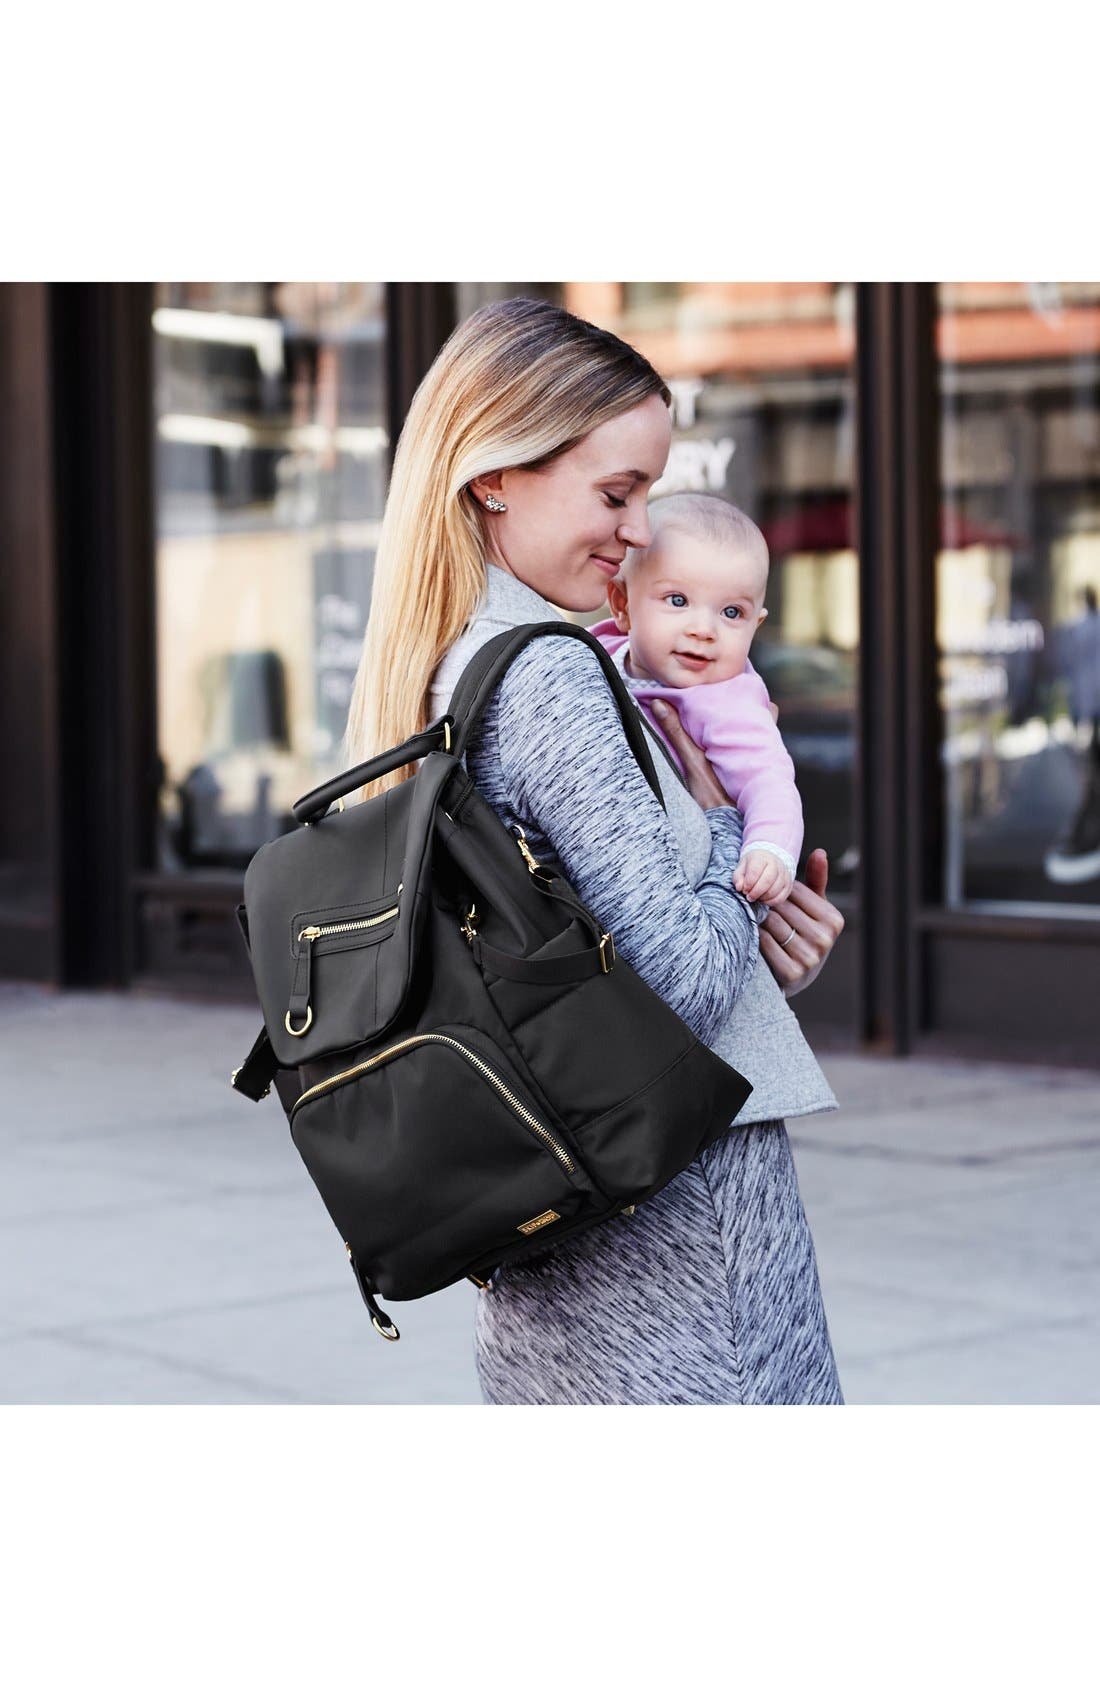 'Chelsea' Diaper Bag Backpack,                             Alternate thumbnail 8, color,                             BLACK